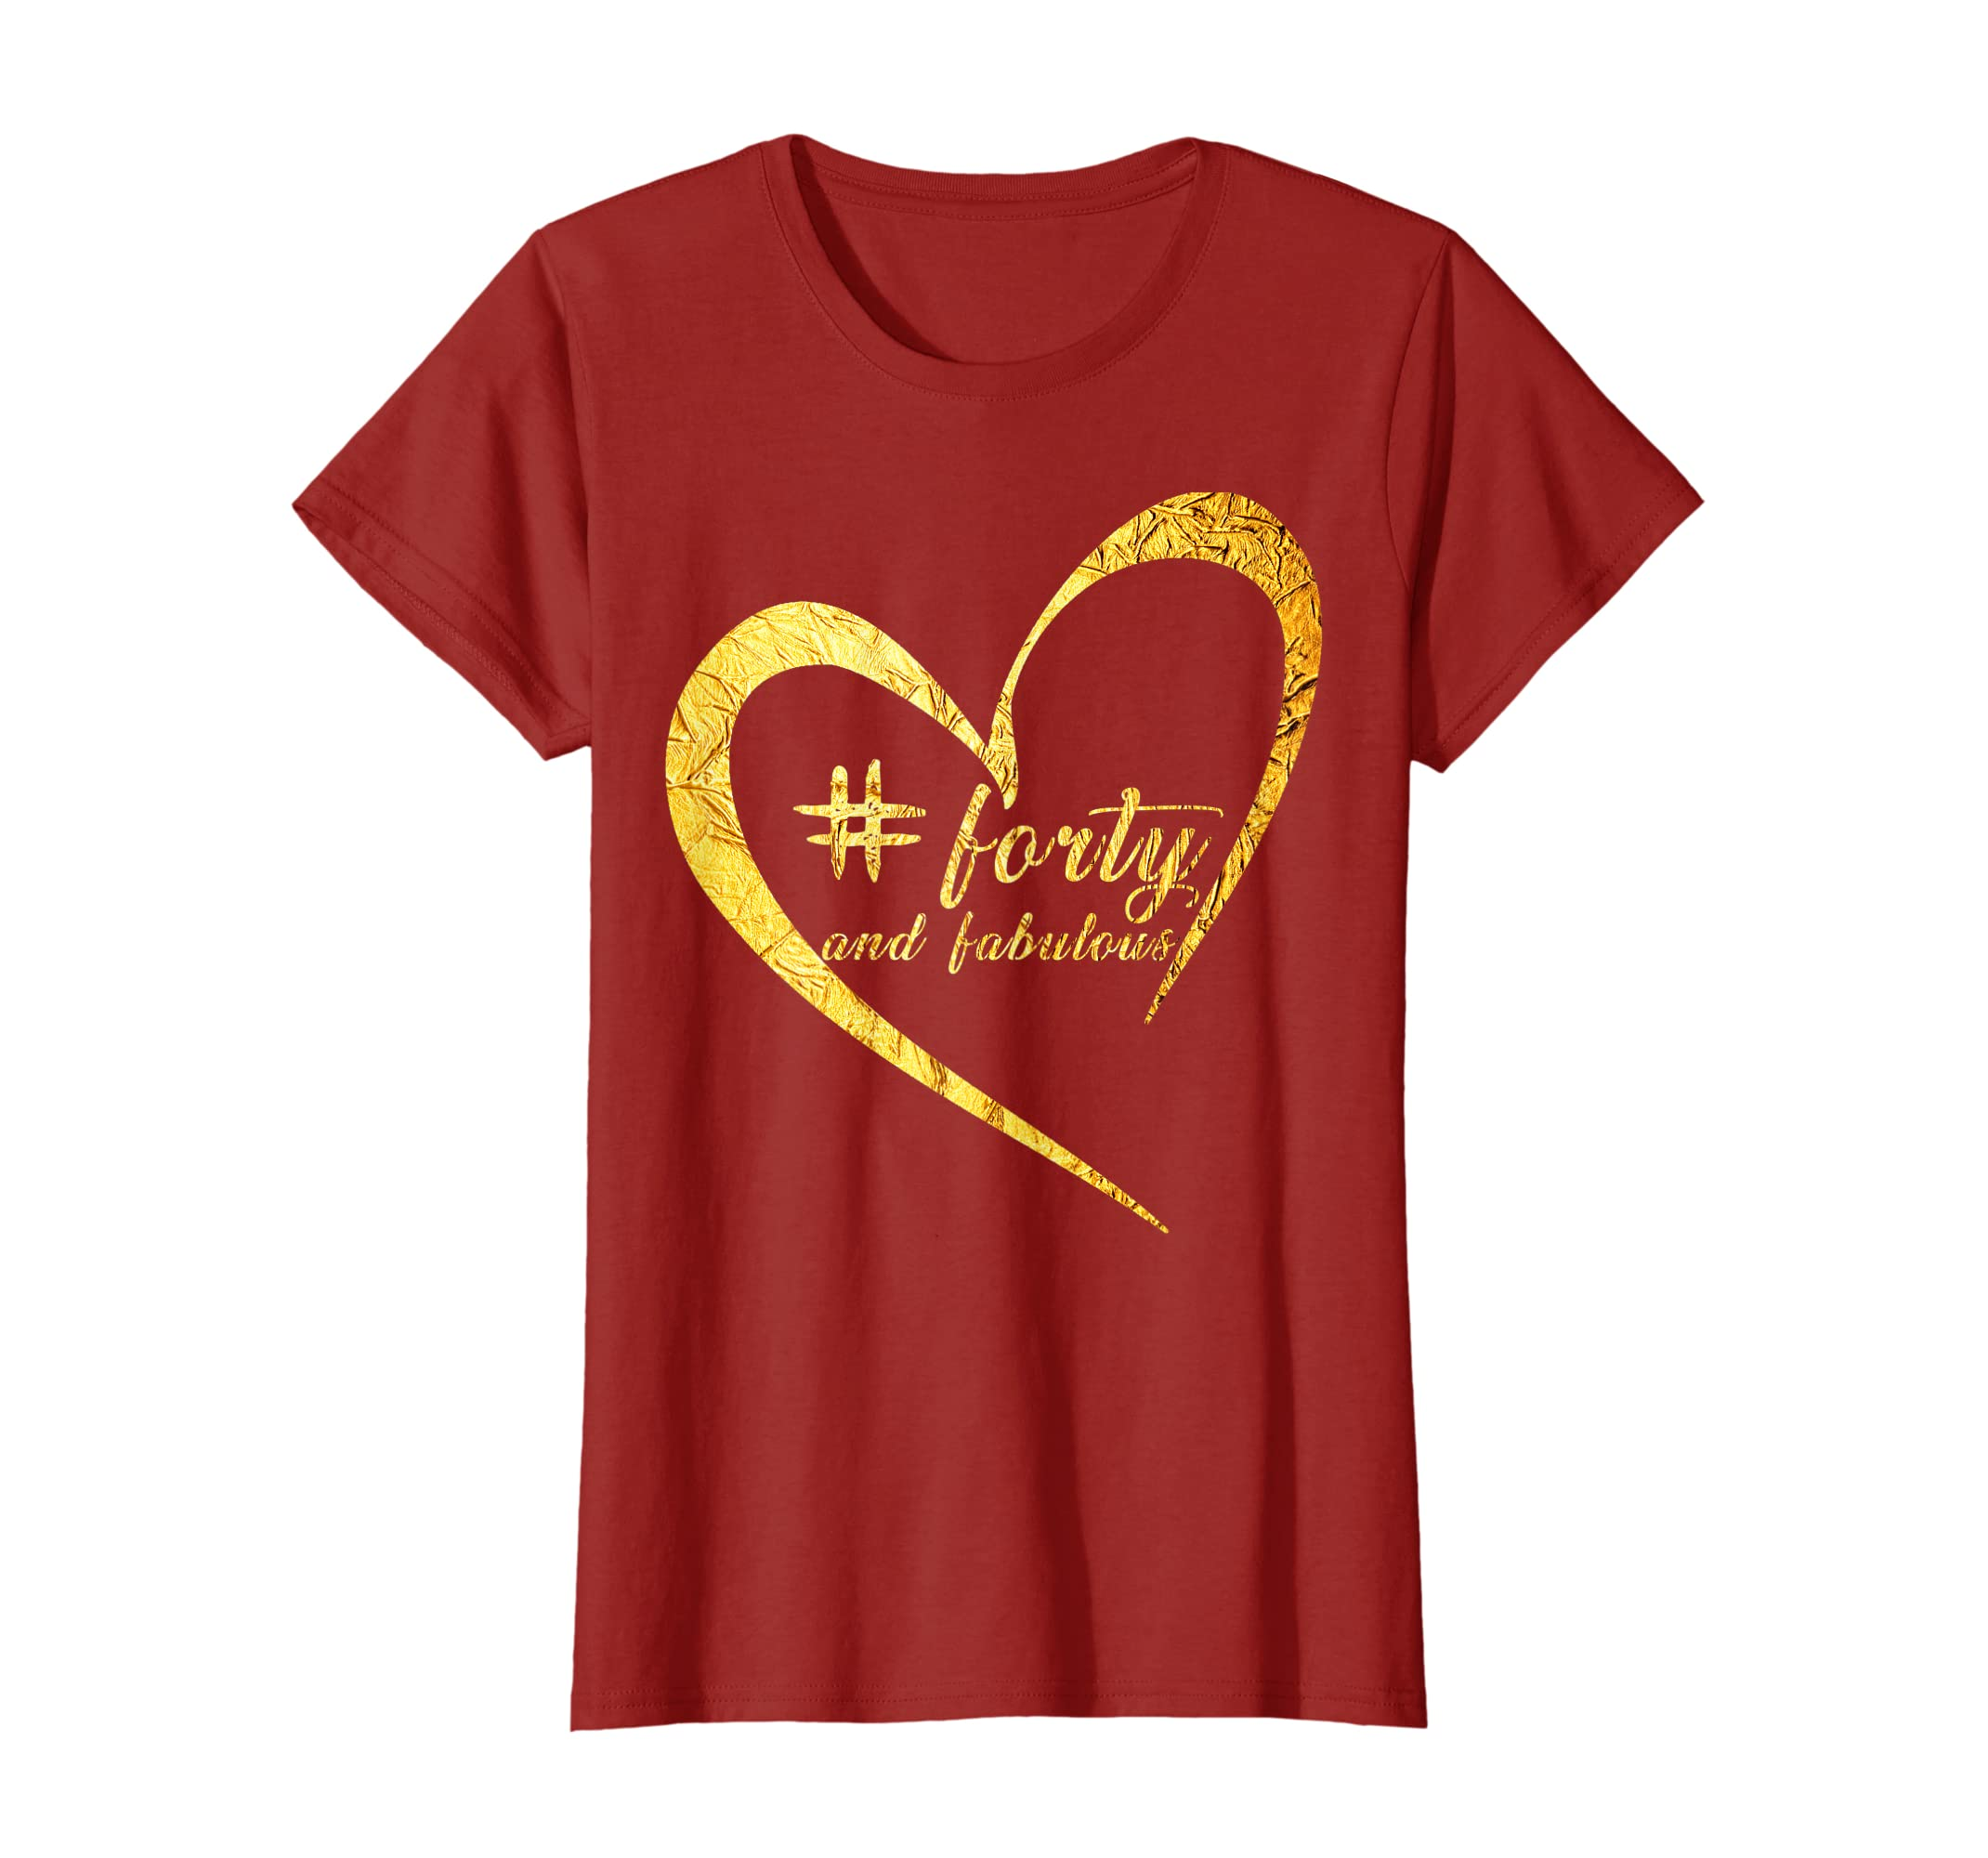 12392dcc Amazon.com: Womens 40th Birthday T-Shirt - Forty And Fabulous: Clothing